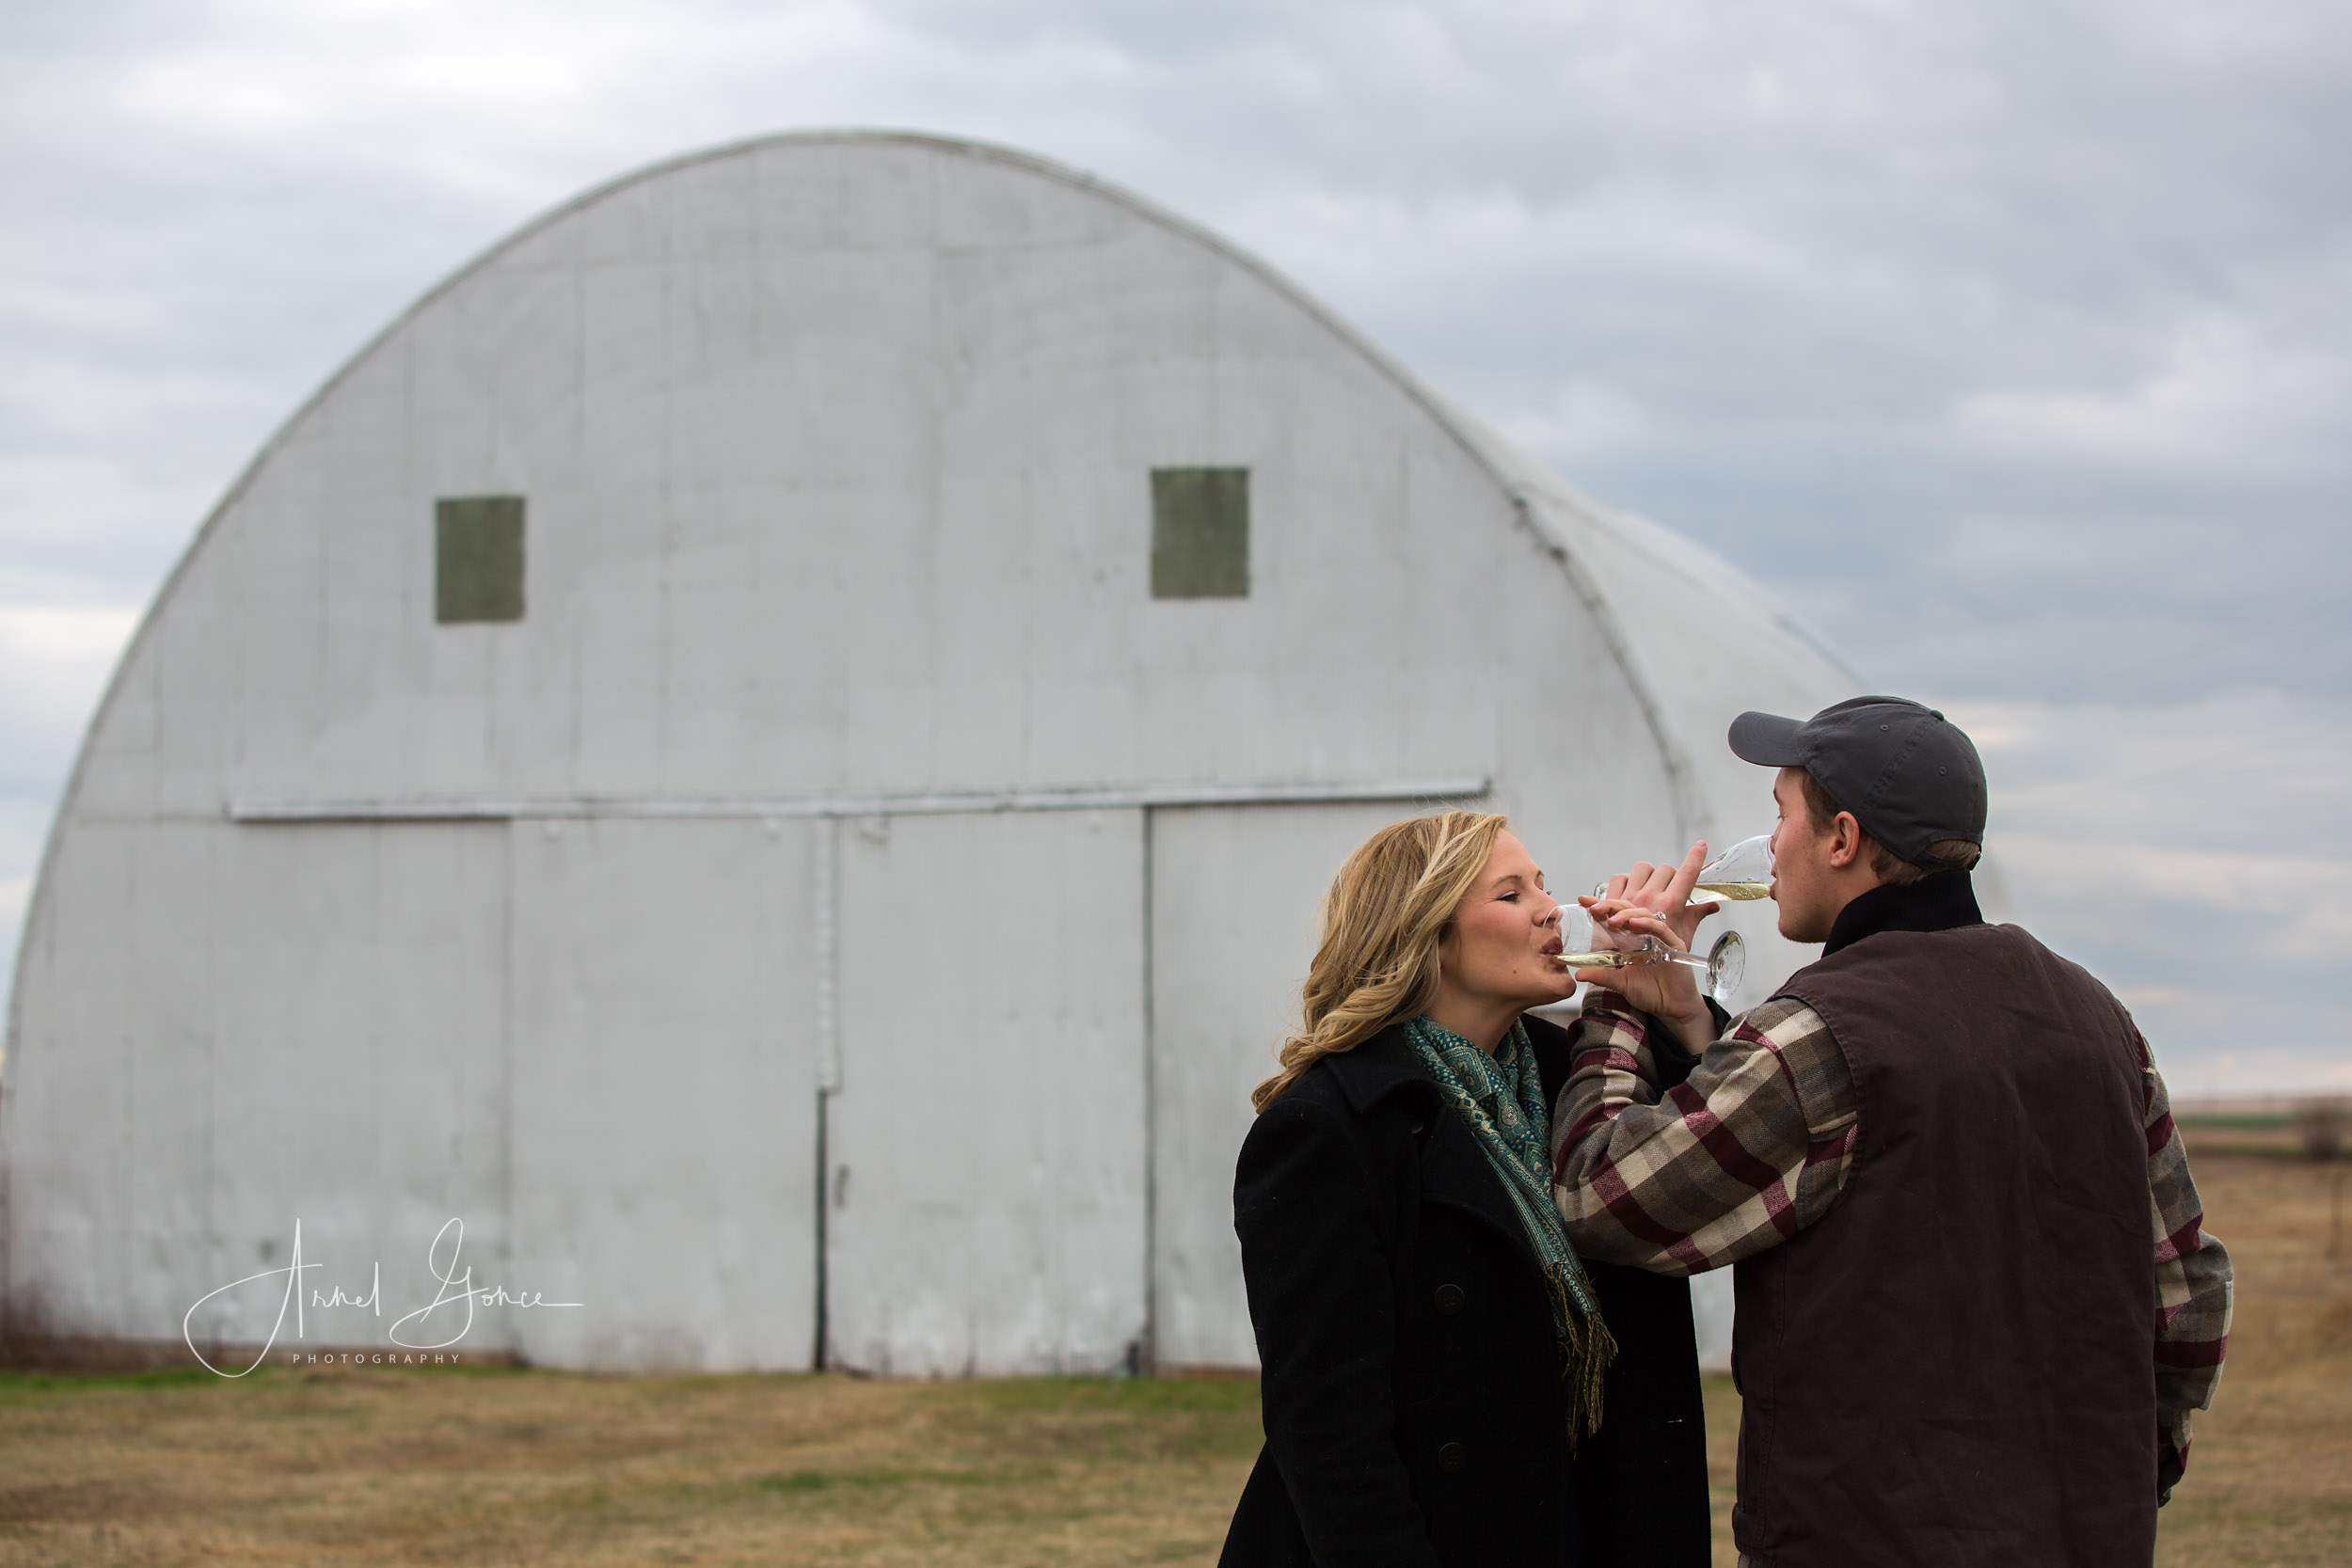 Bride and Groom to be standing in front of a barn on a farm in Piedmont Oklahoma drinking champagne.